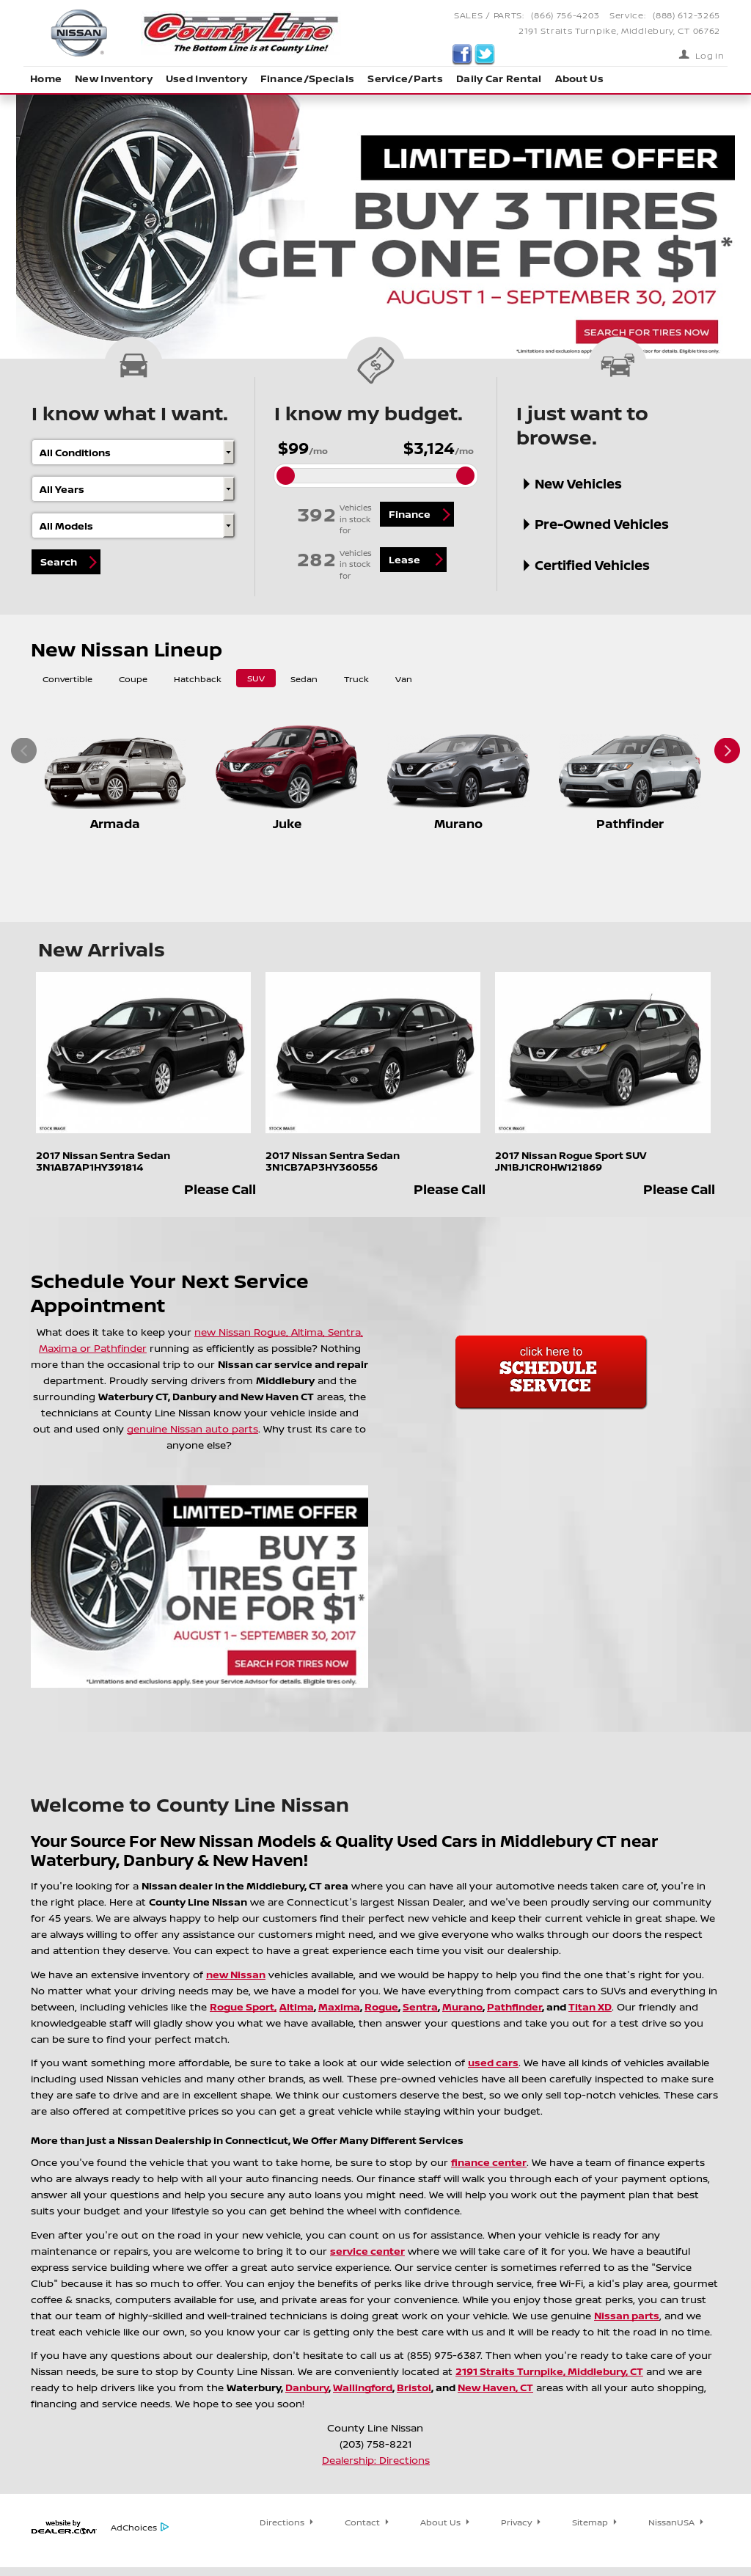 County Line Nissan Website History